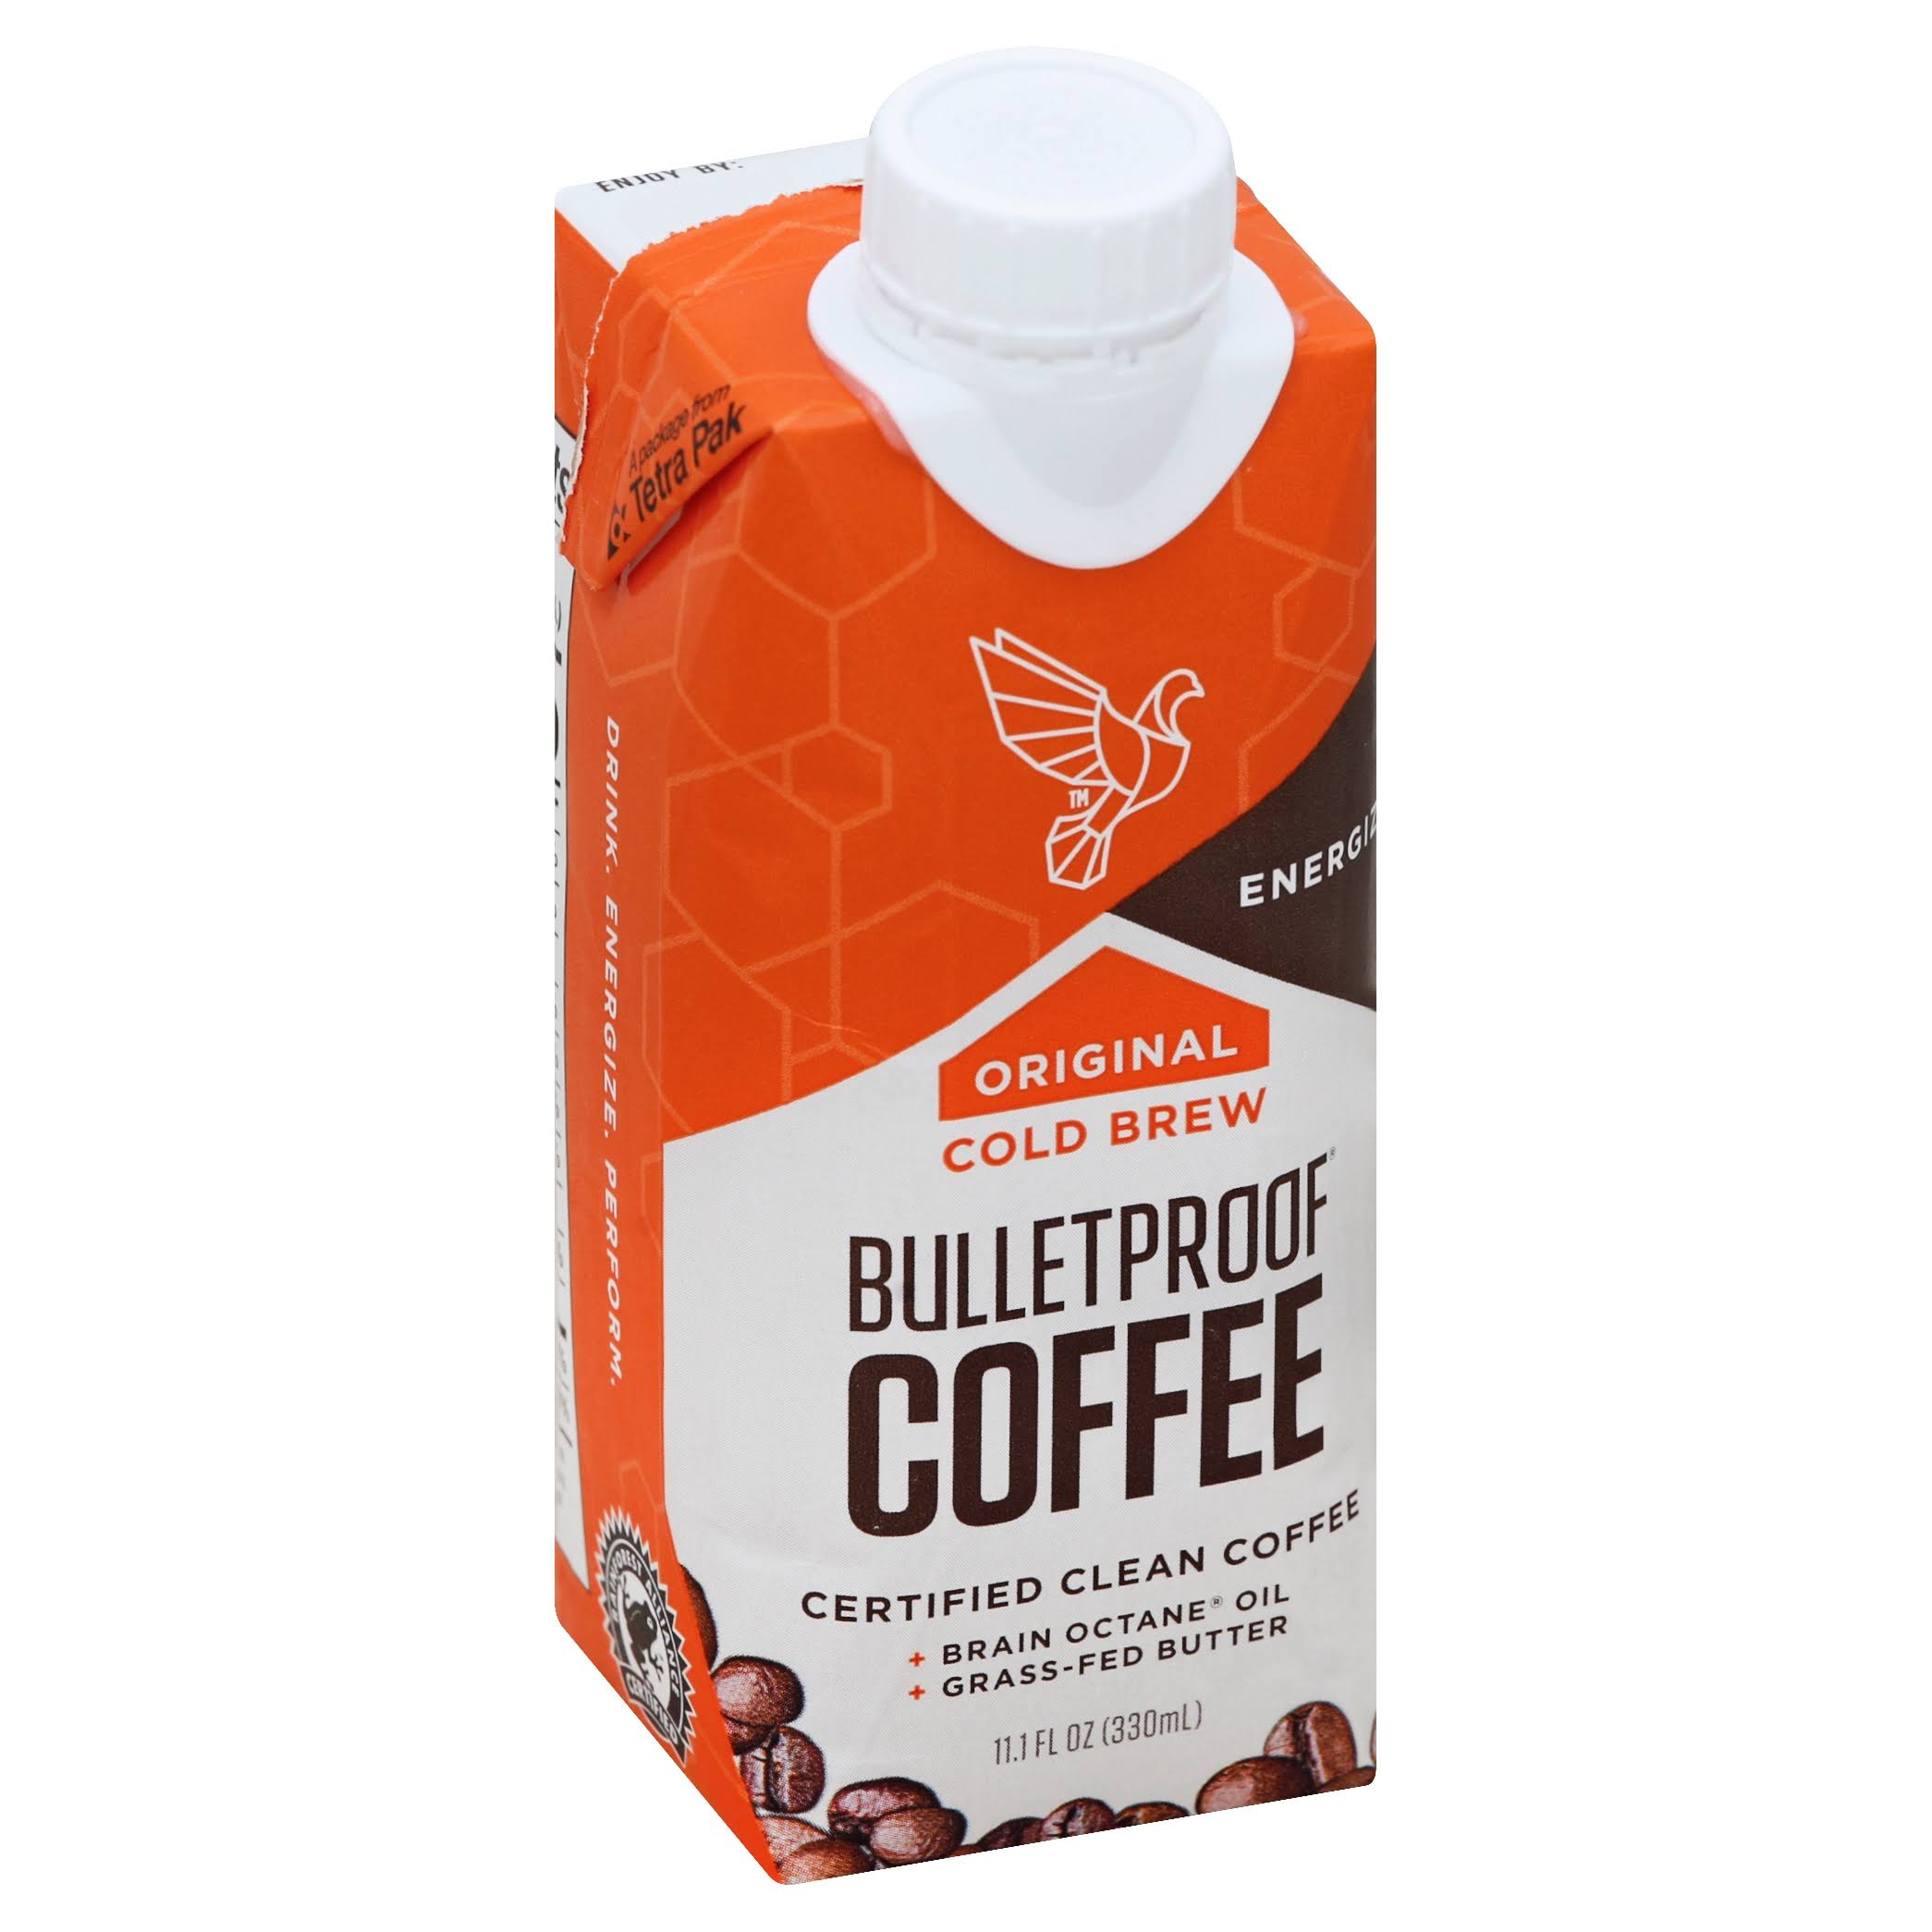 Bulletproof Coffee, Cold Brew, Original - 11.1 fl oz